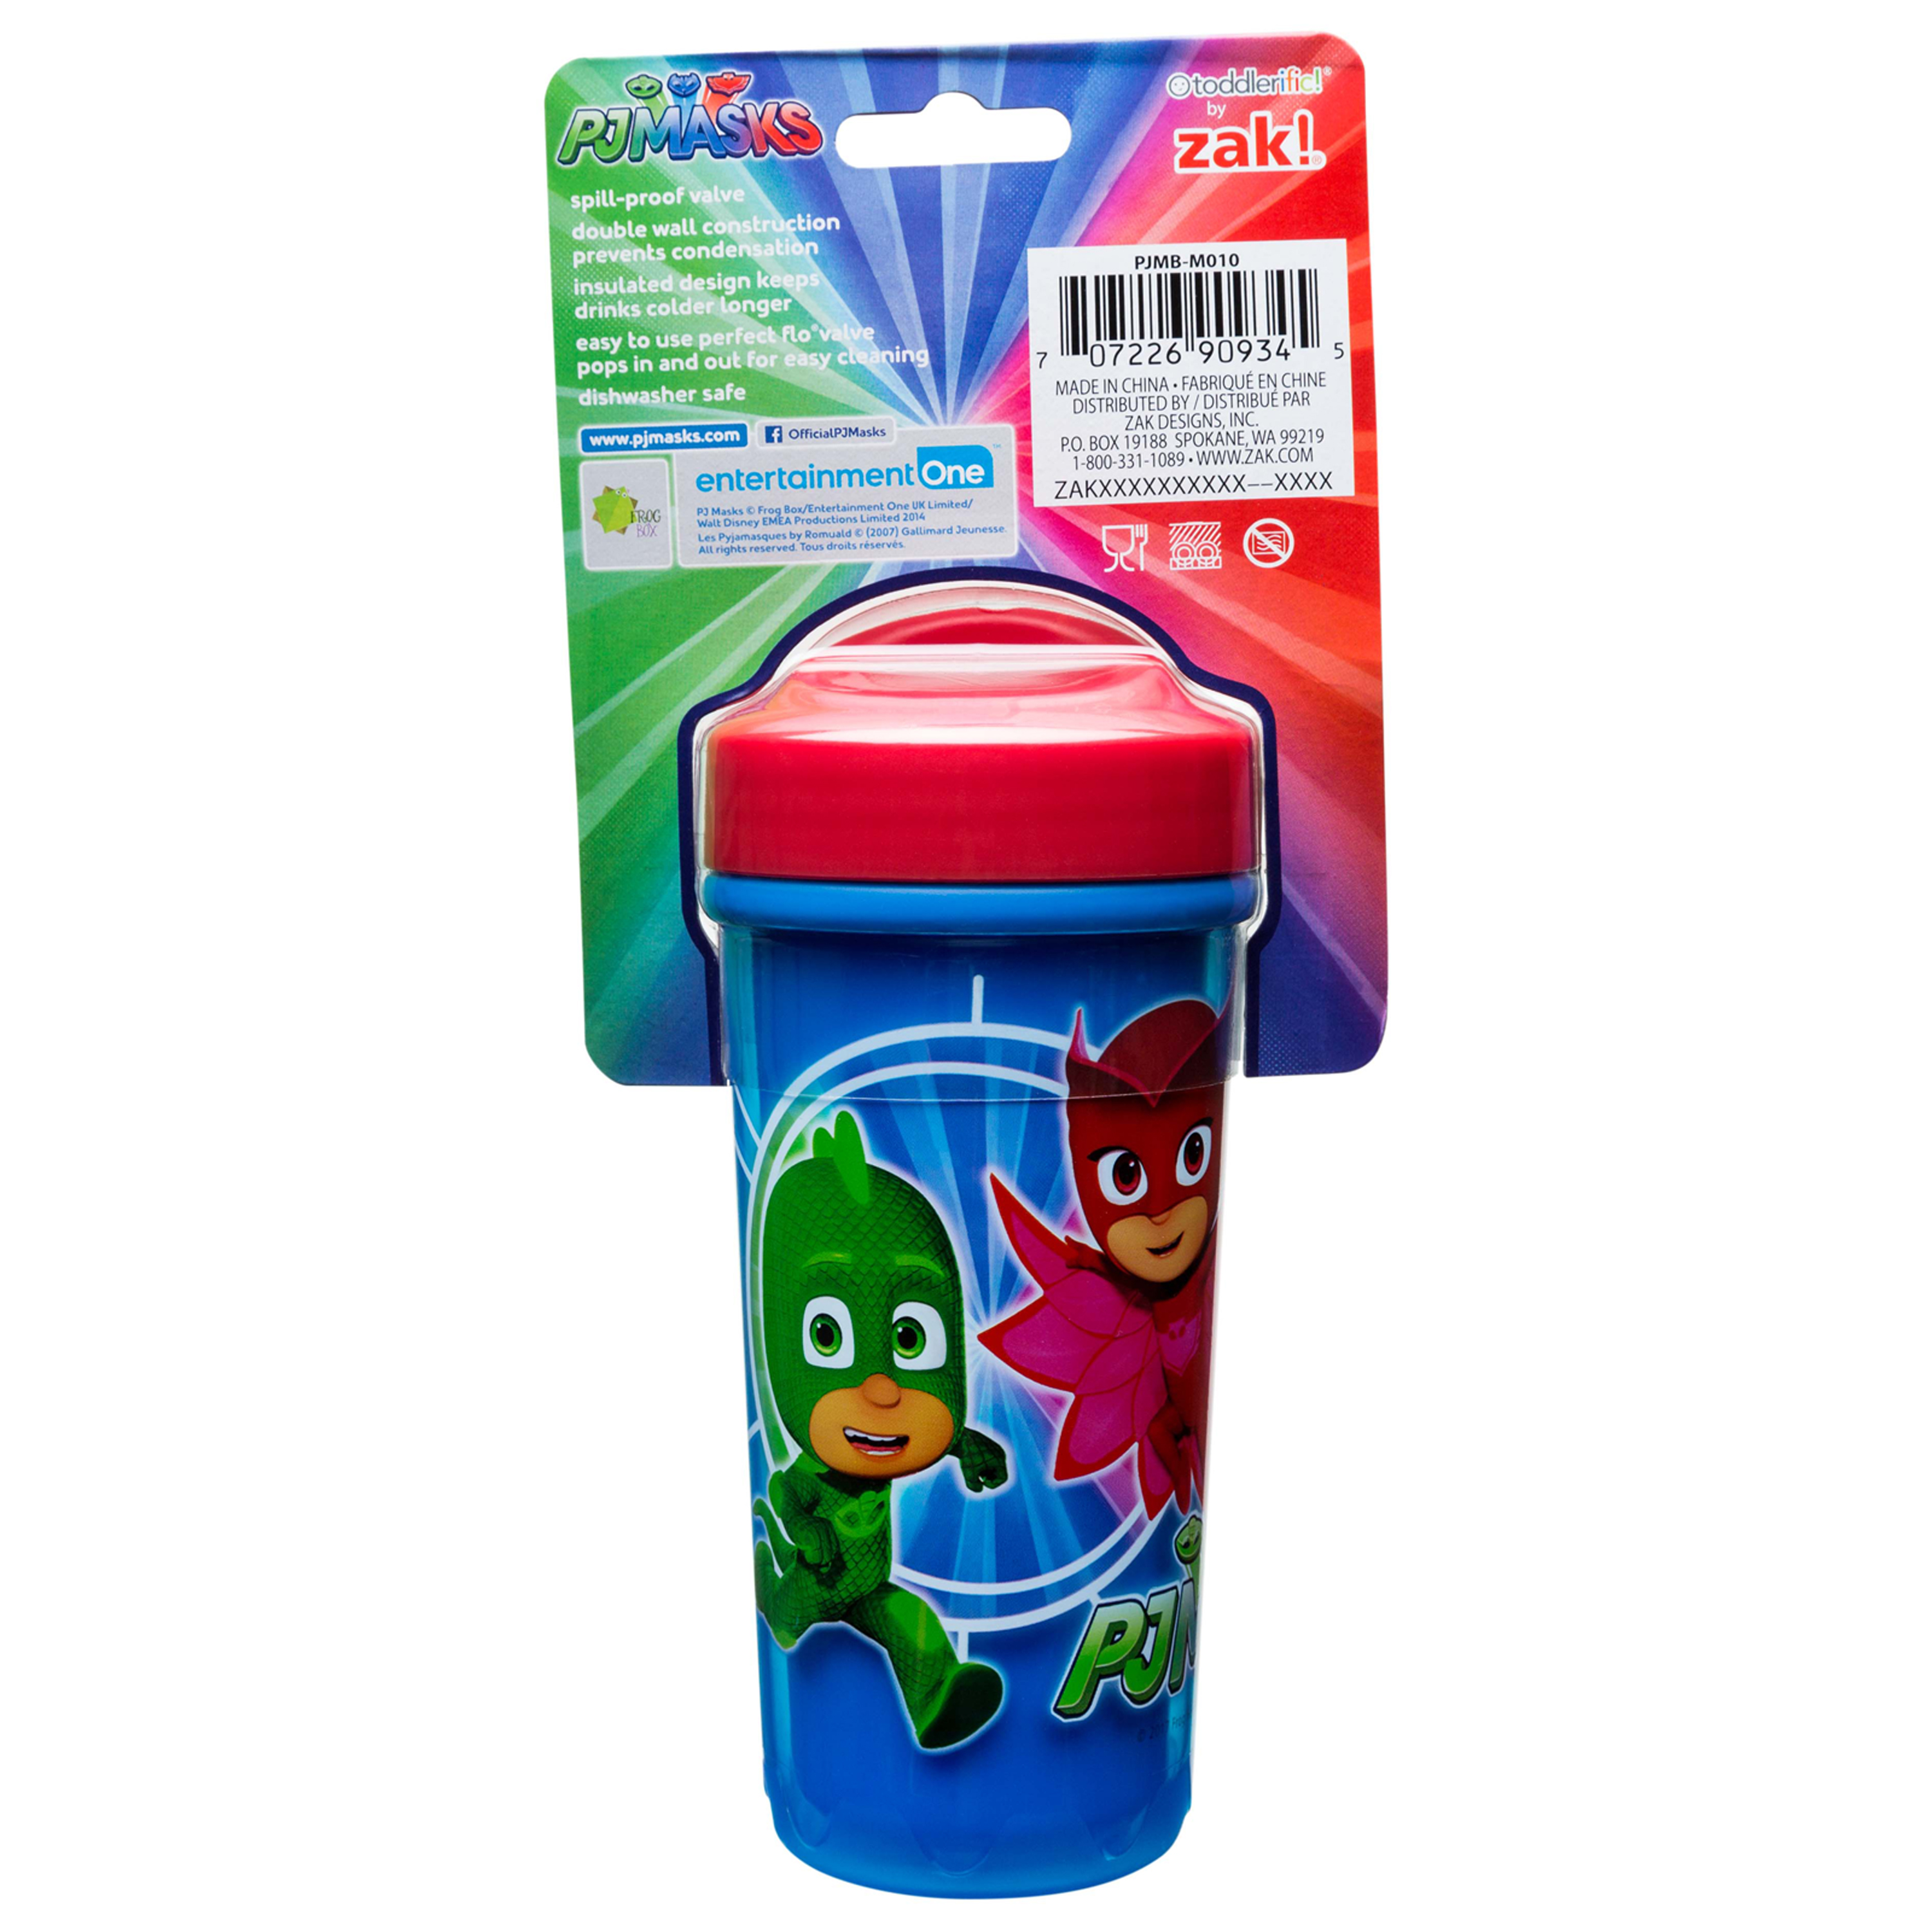 PJ Masks 8.7 ounce Sippy Cup, Catboy, Owlette & Gekko, 2-piece set slideshow image 4